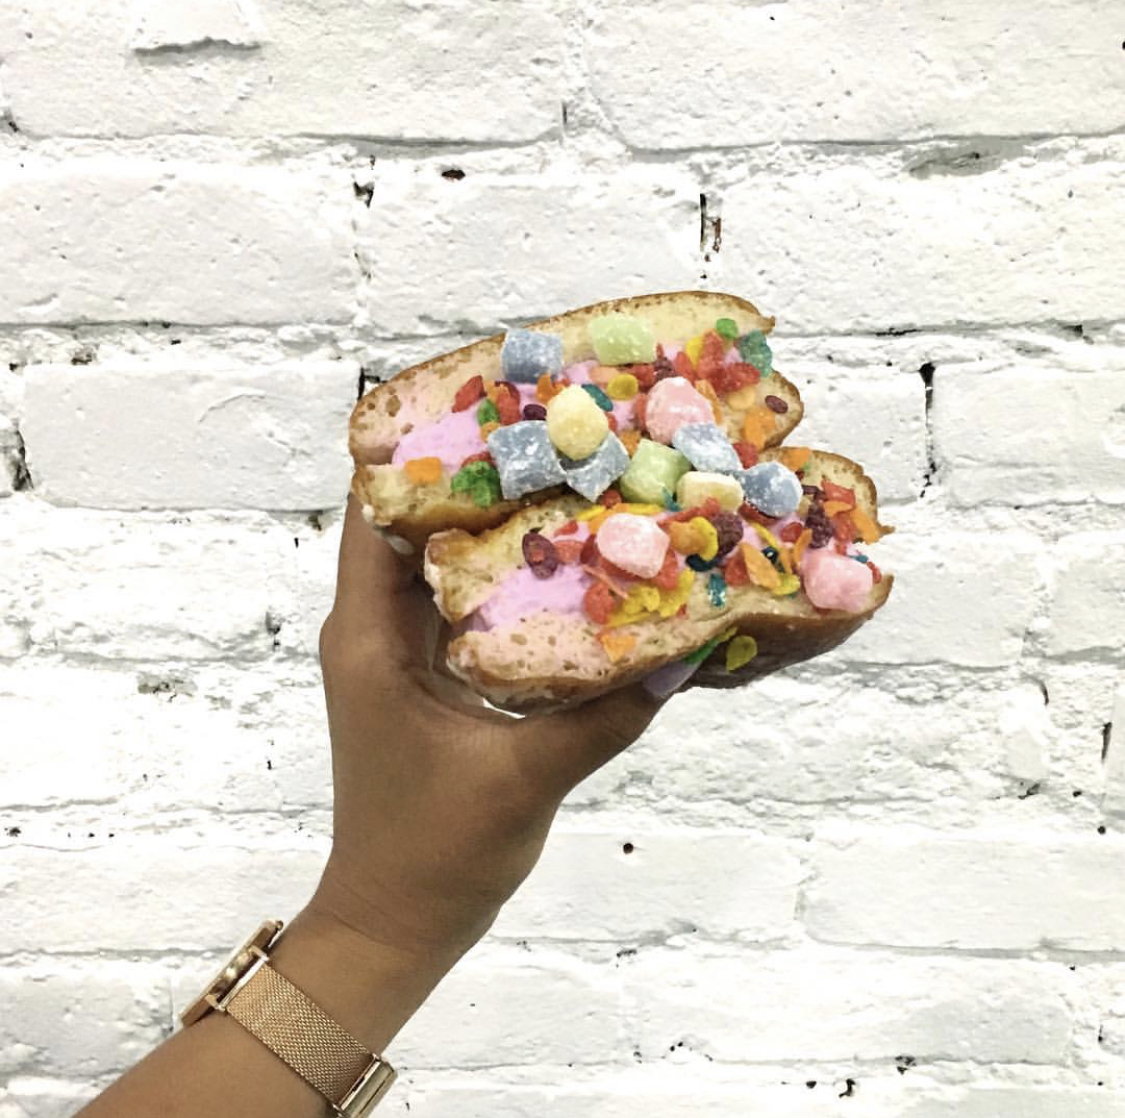 White Chocolate Lavender ice cream stuffed into a donut and topped off with mochi and fruity pebbles